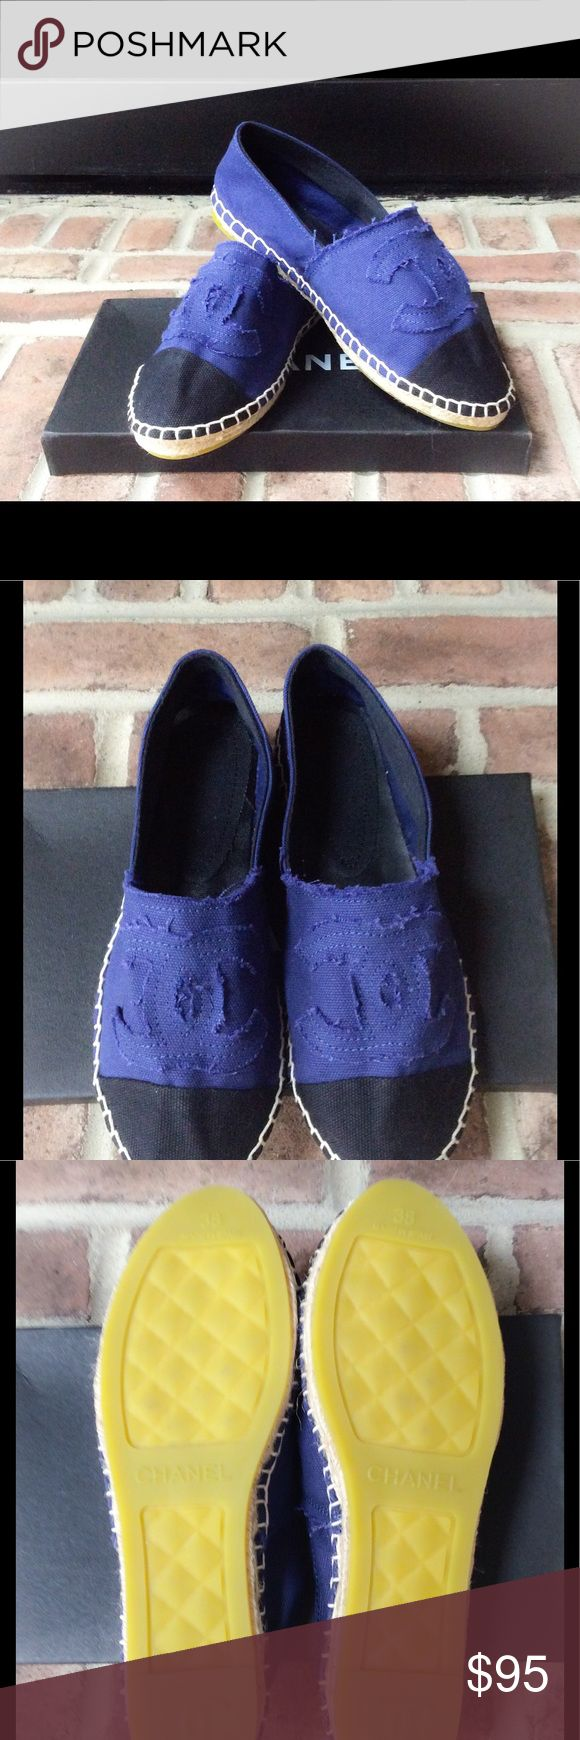 Espadrilles NWOT Canvas INSPIRED Chanel espadrilles, fits 6- 6 1/2. Bright blue with black tip. Measures 8 1/2 please measure foot before purchase. I am a 6 and narrow foot they are a bit big on me. 🚫NO TRADES 🚫NO LOWBALLS Each has its own dust bag but no box. Bags Shoulder Bags